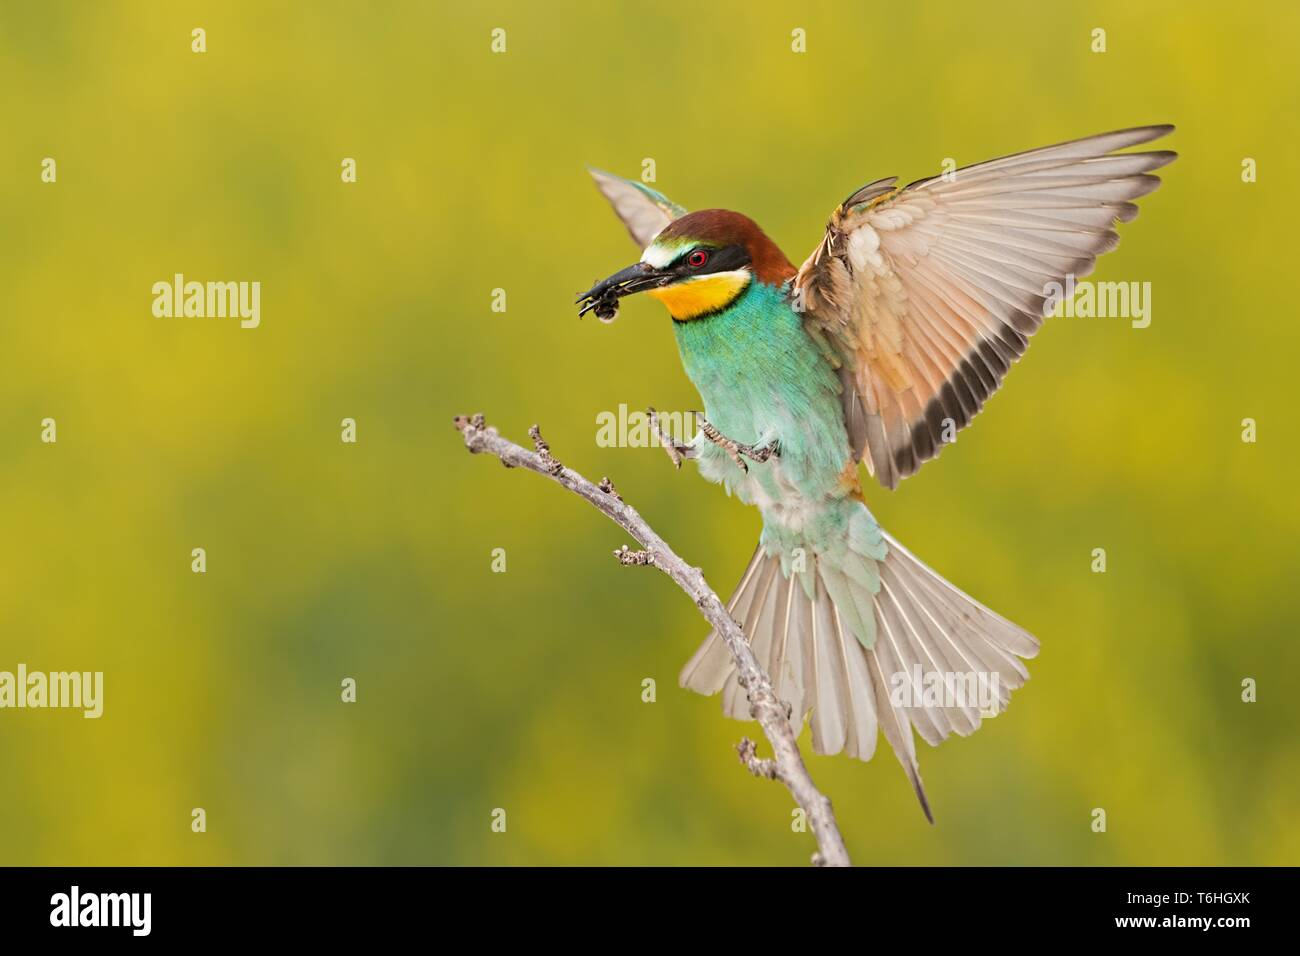 Bee-eater landing on a twig with bee in beak - Stock Image